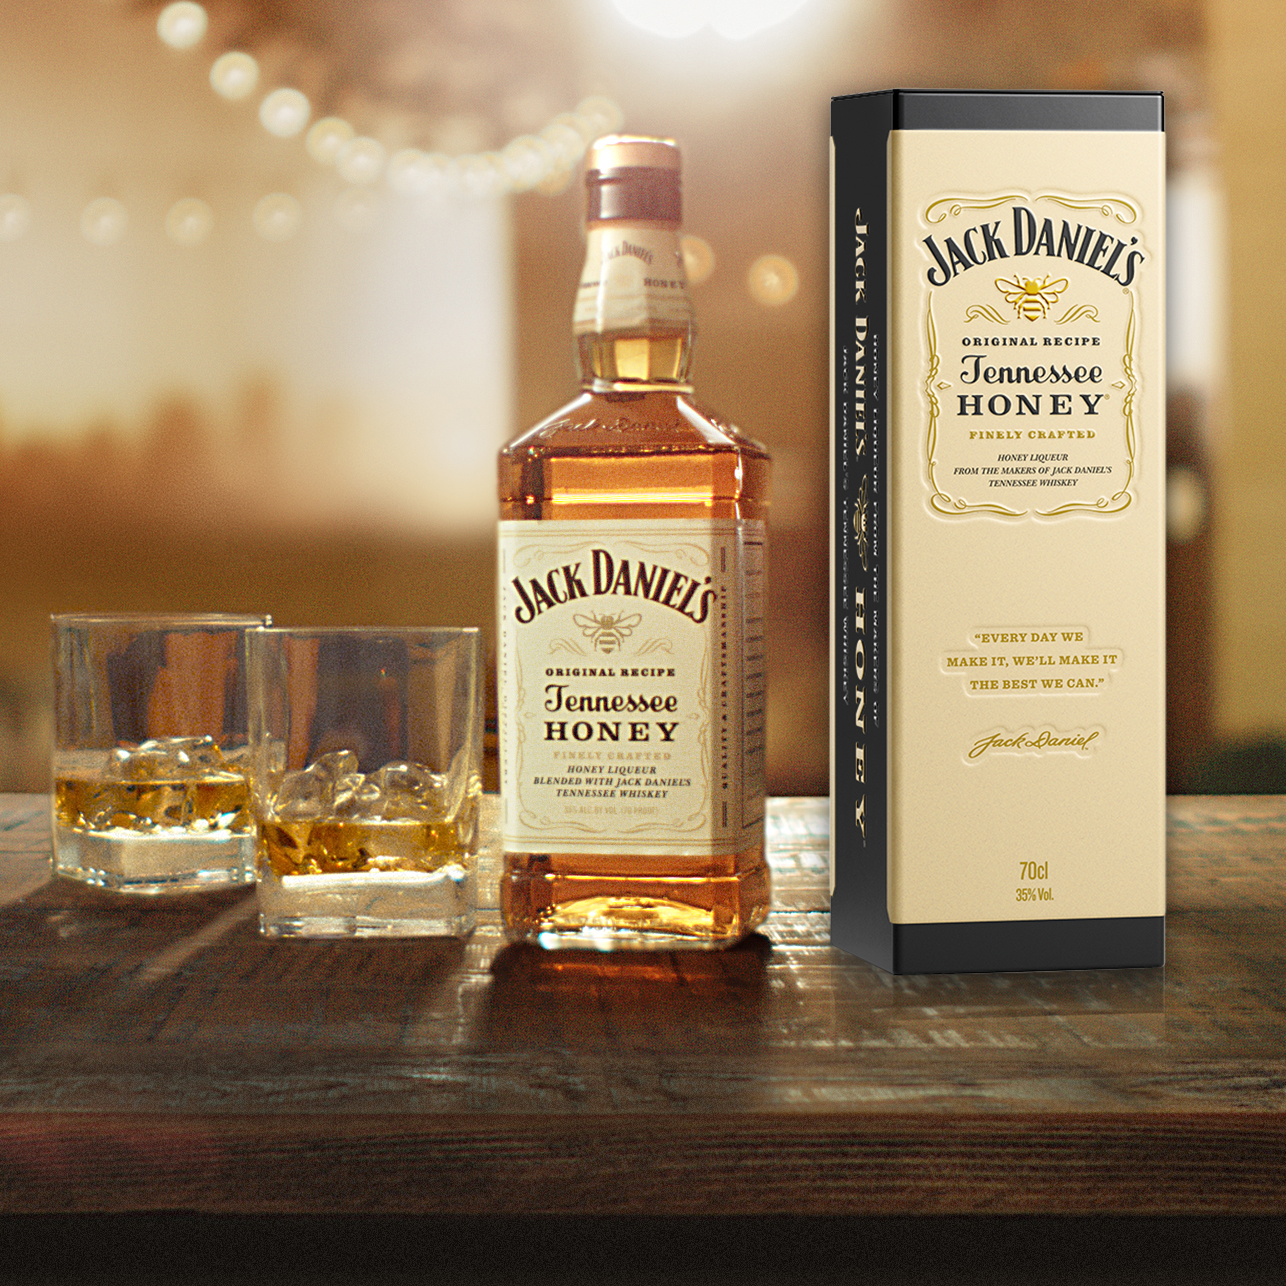 JACK DANIEL'S Tennessee Honey Drinks about